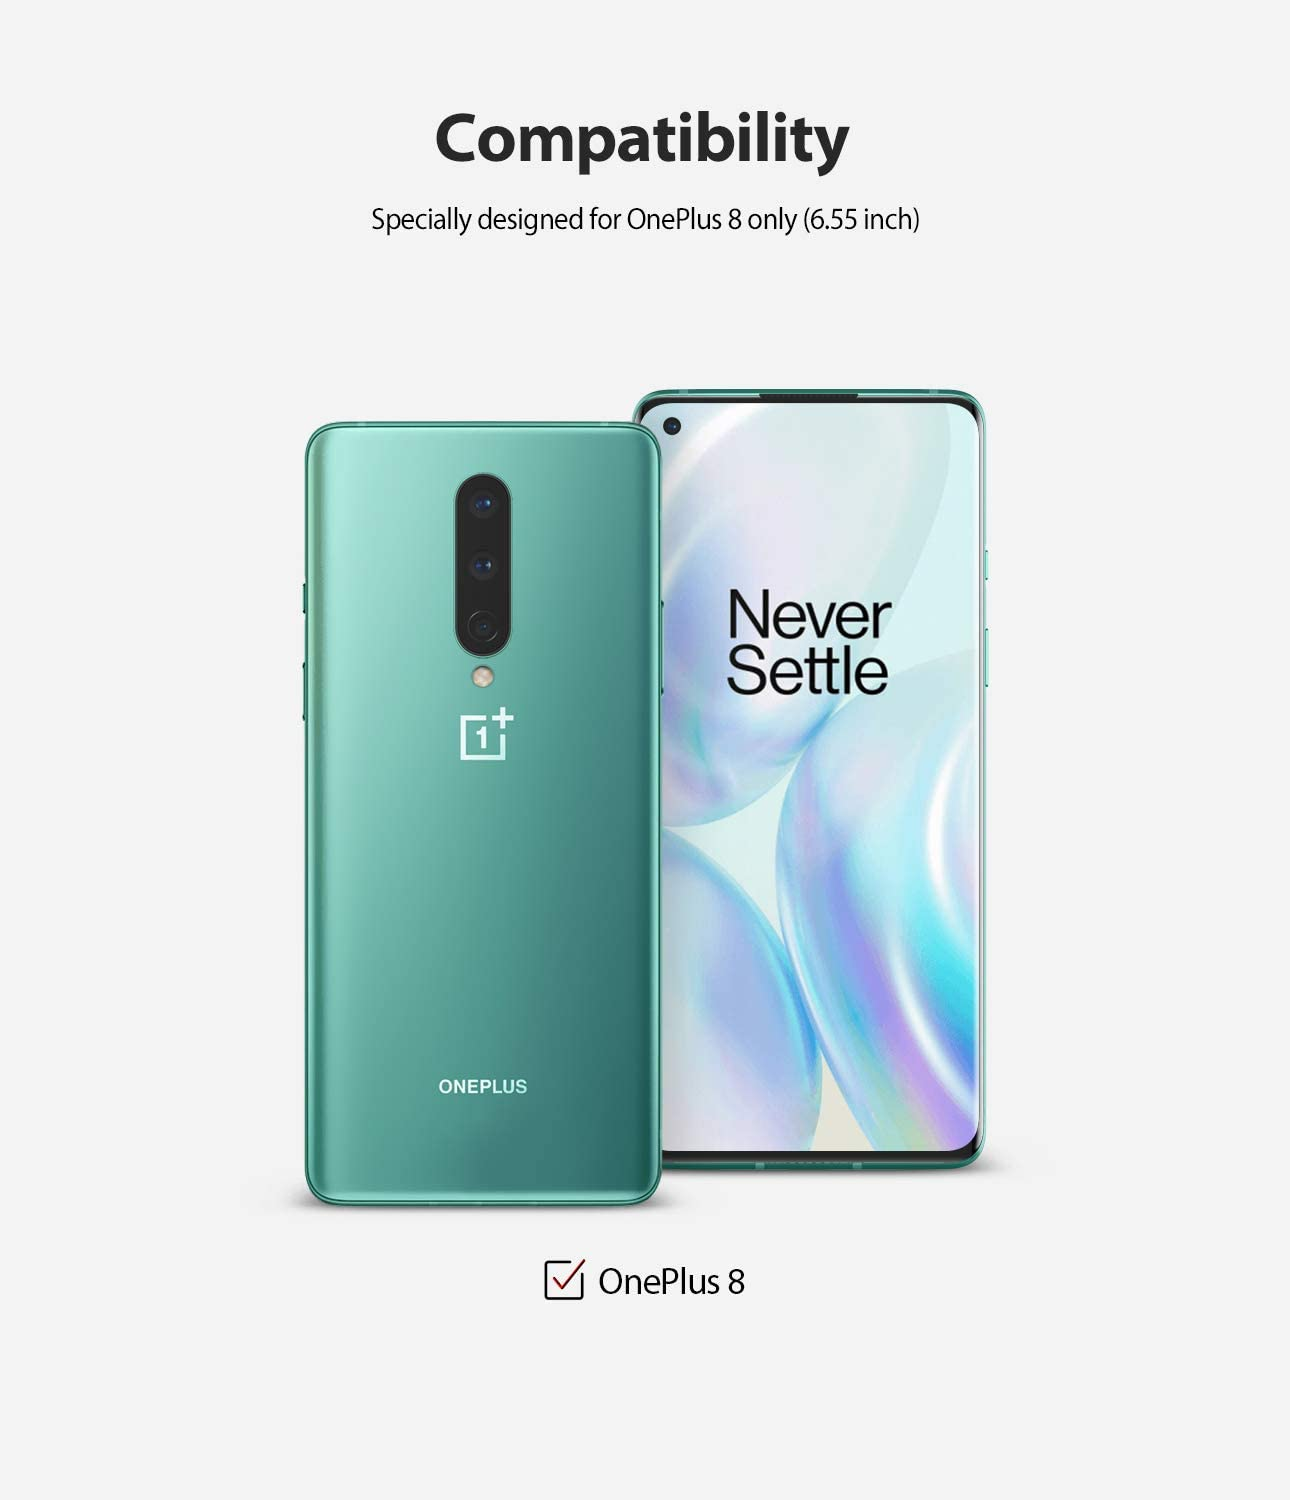 compatible with oneplus 8